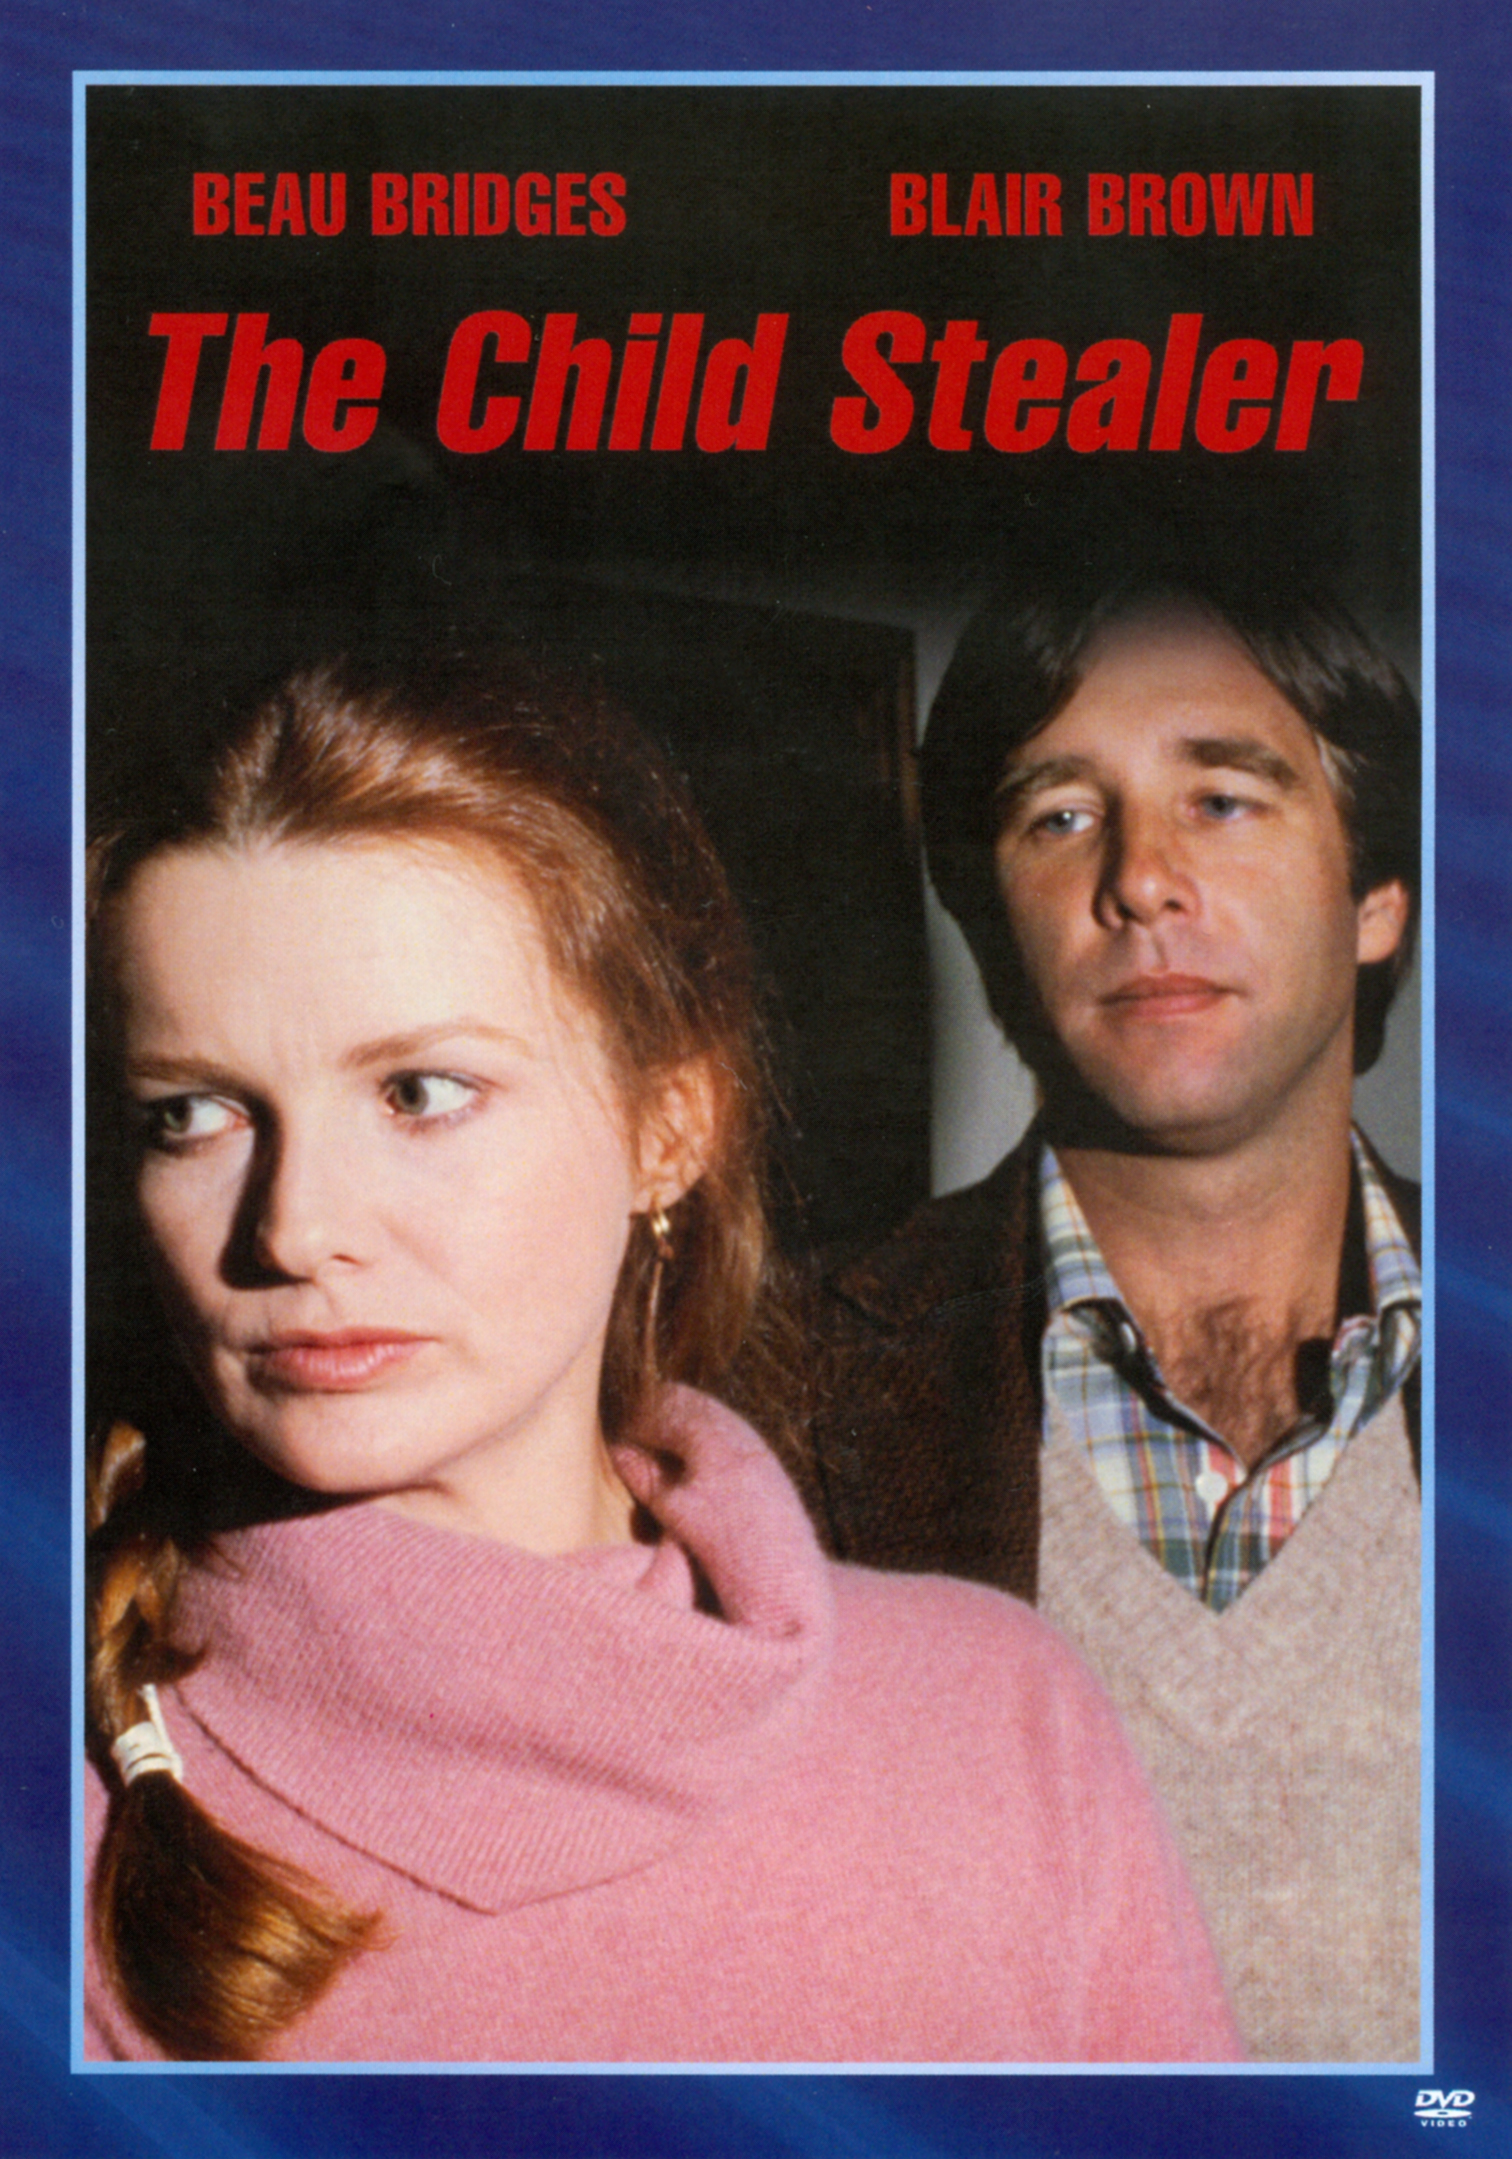 The Child Stealer